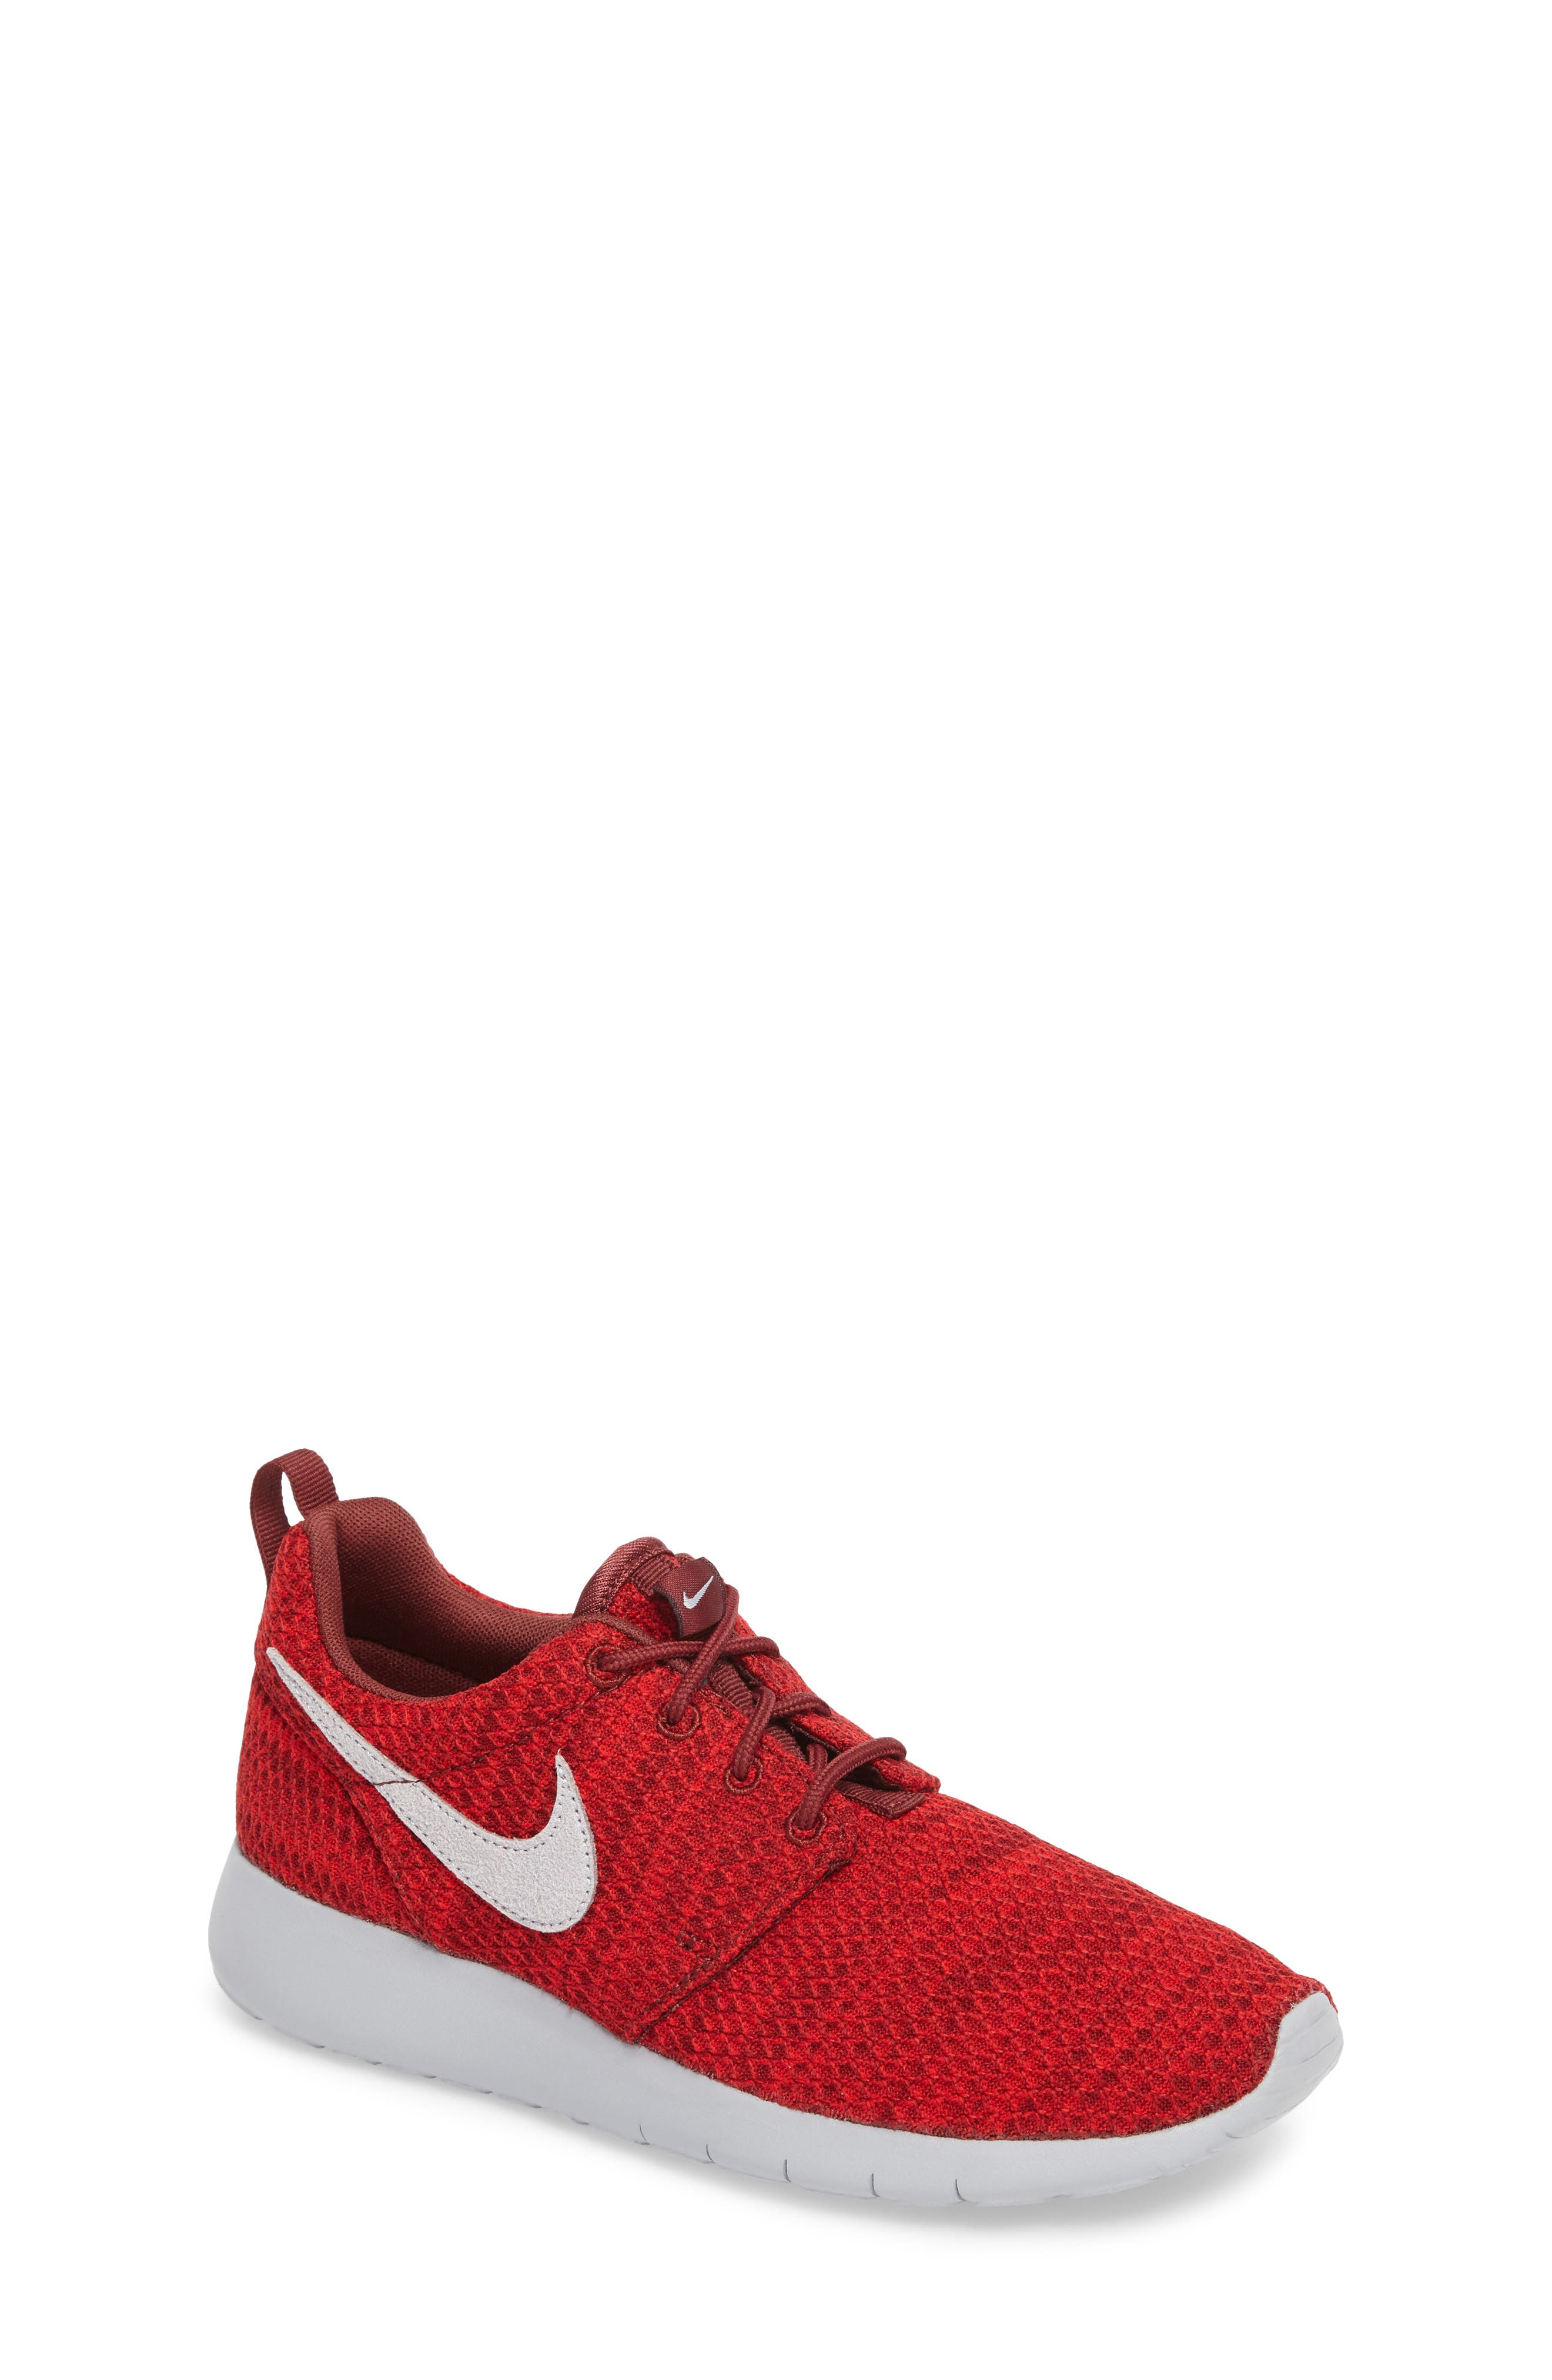 'Roshe Run' Sneaker,                             Main thumbnail 55, color,